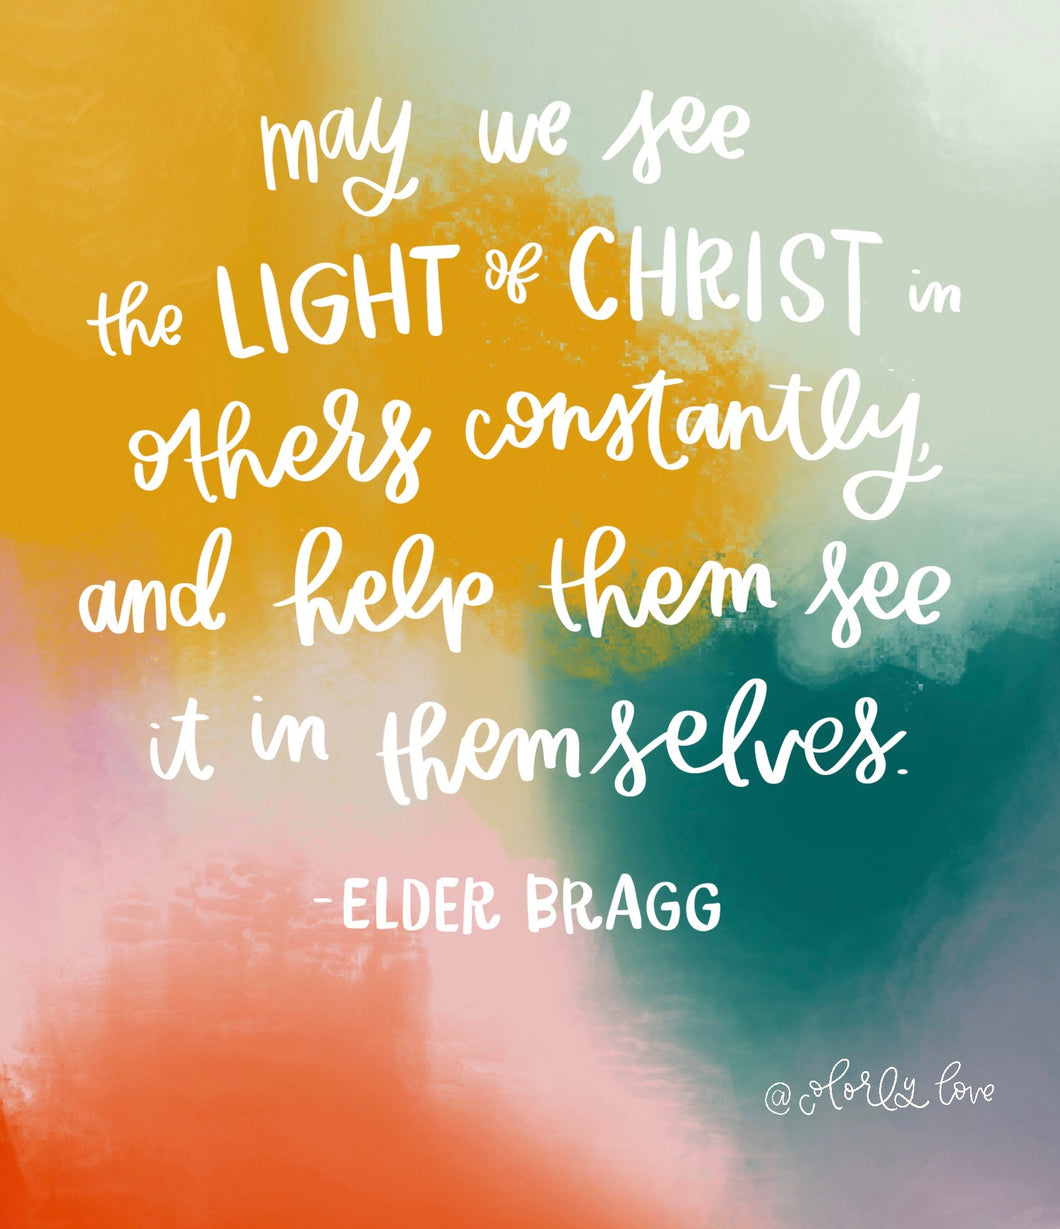 Elder Bragg Quote